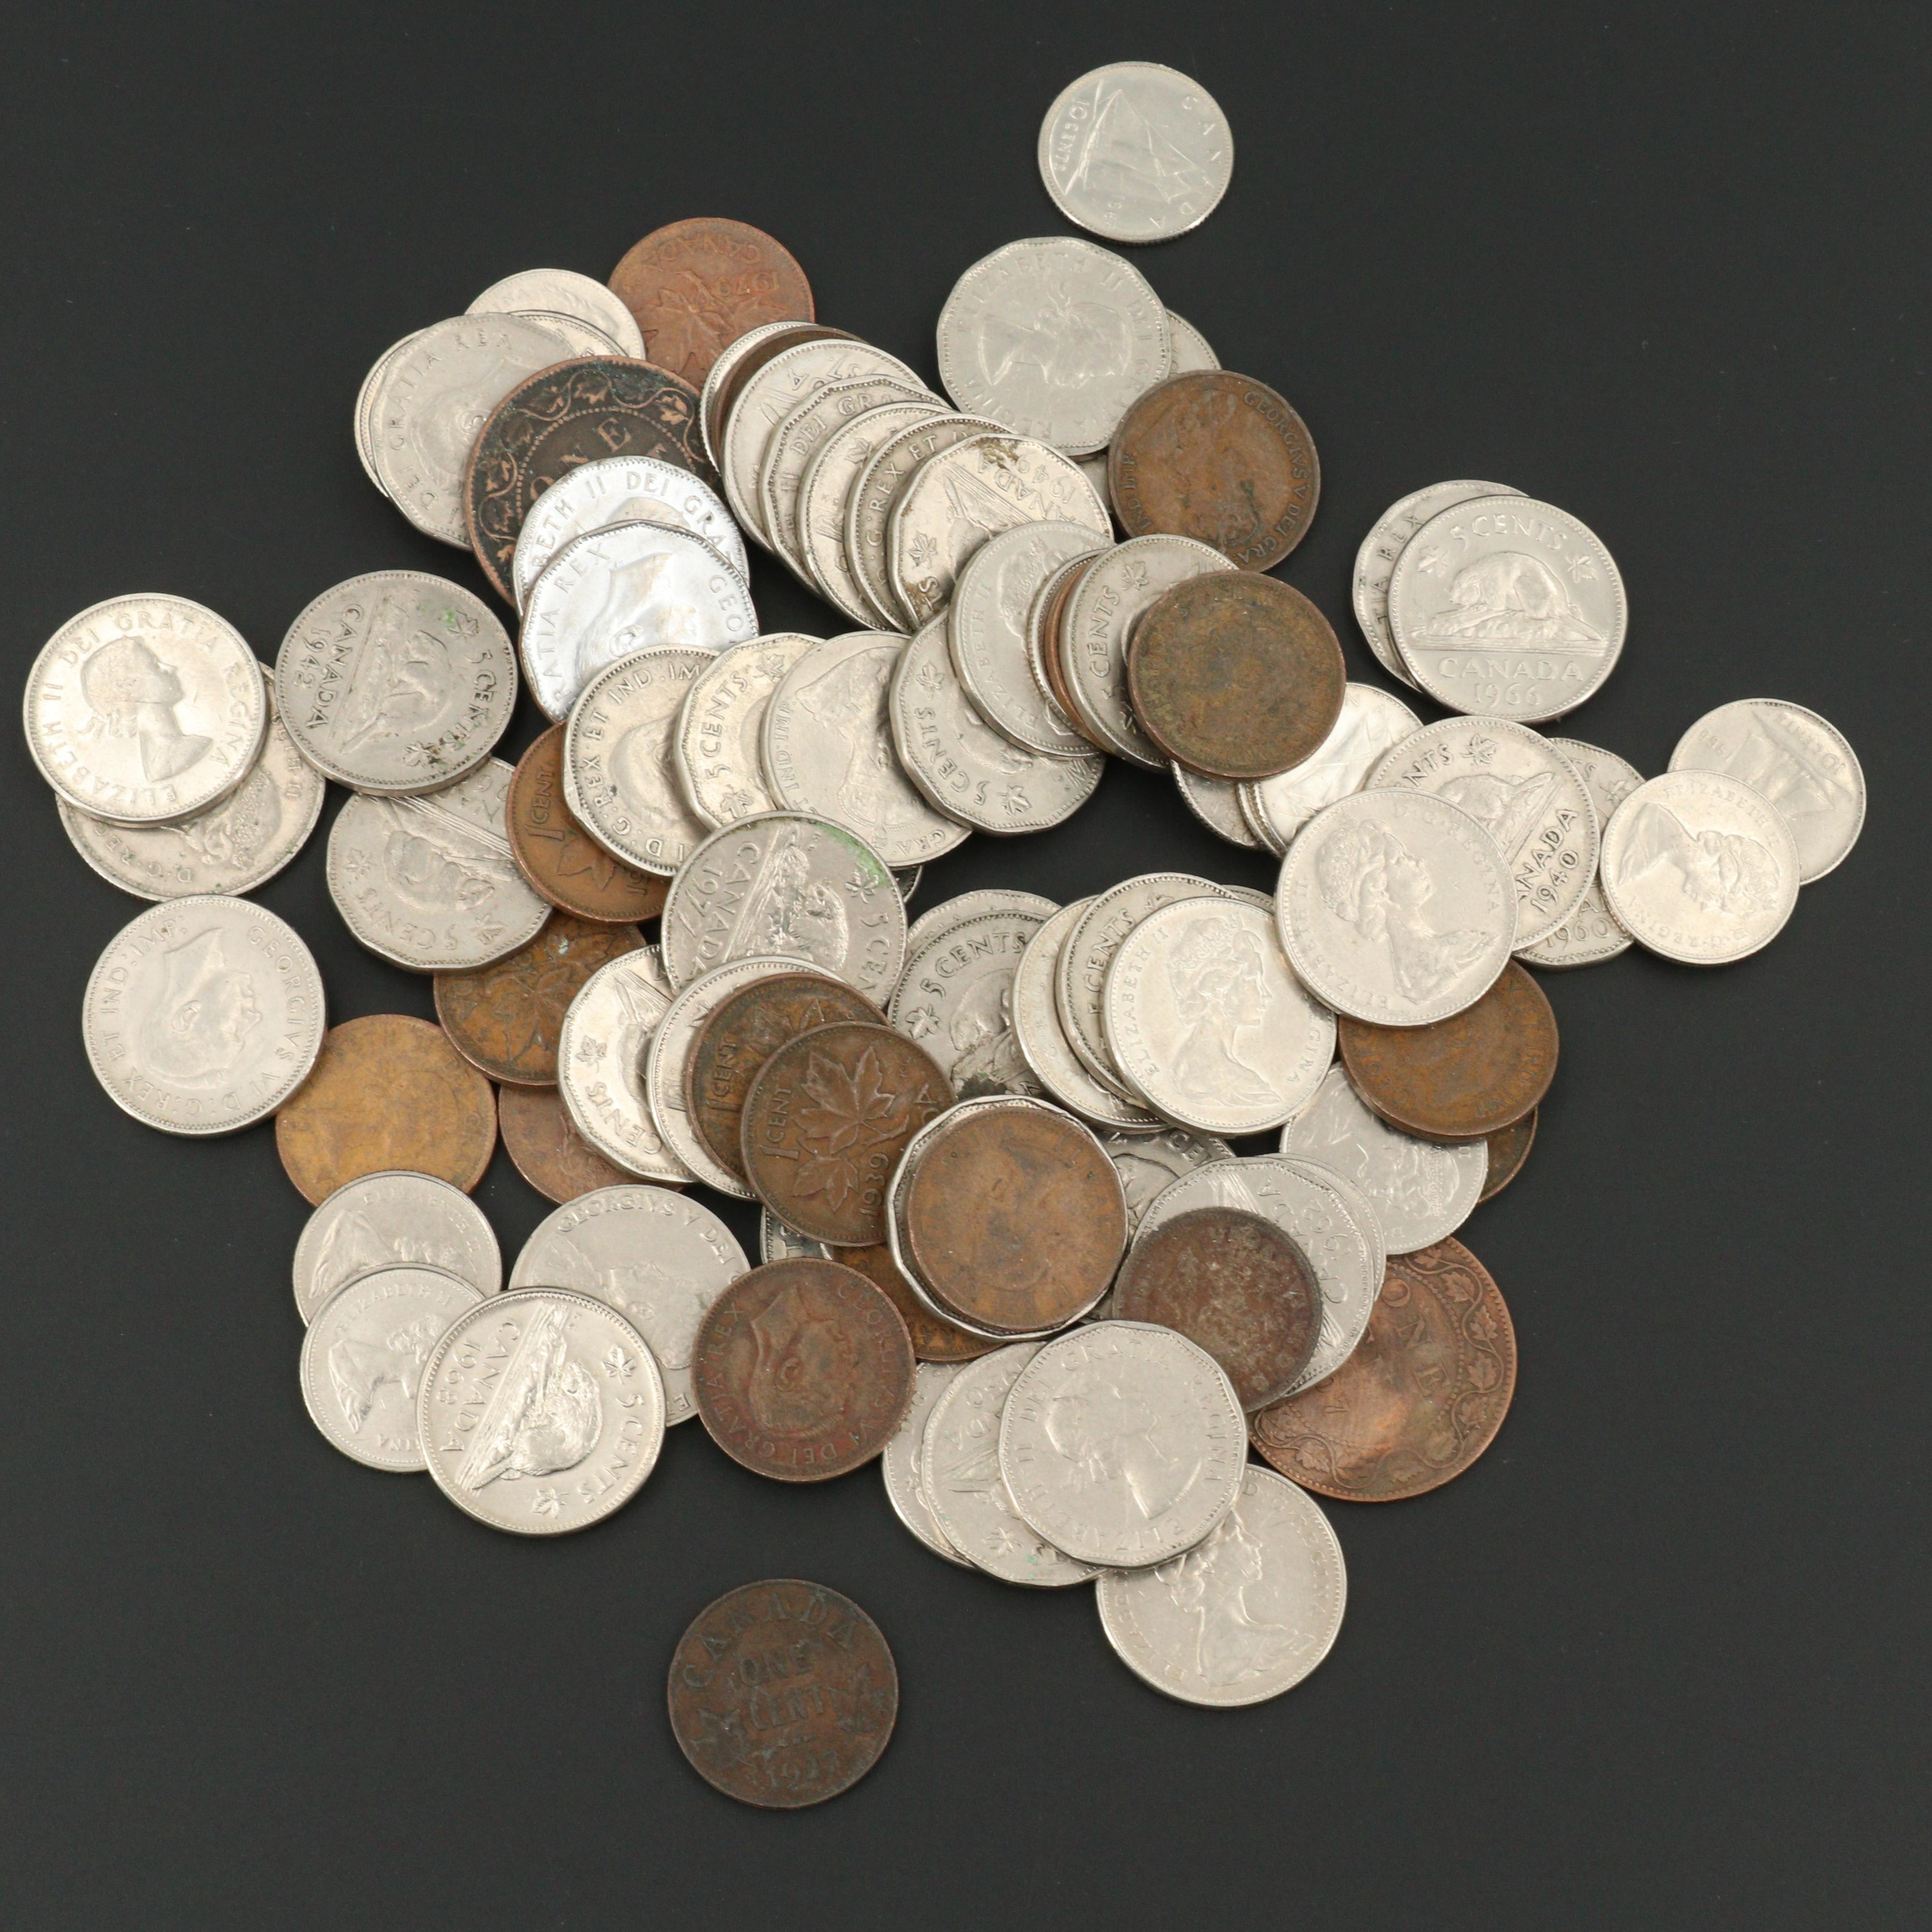 Eighty-Three Vintage Canadian Coins